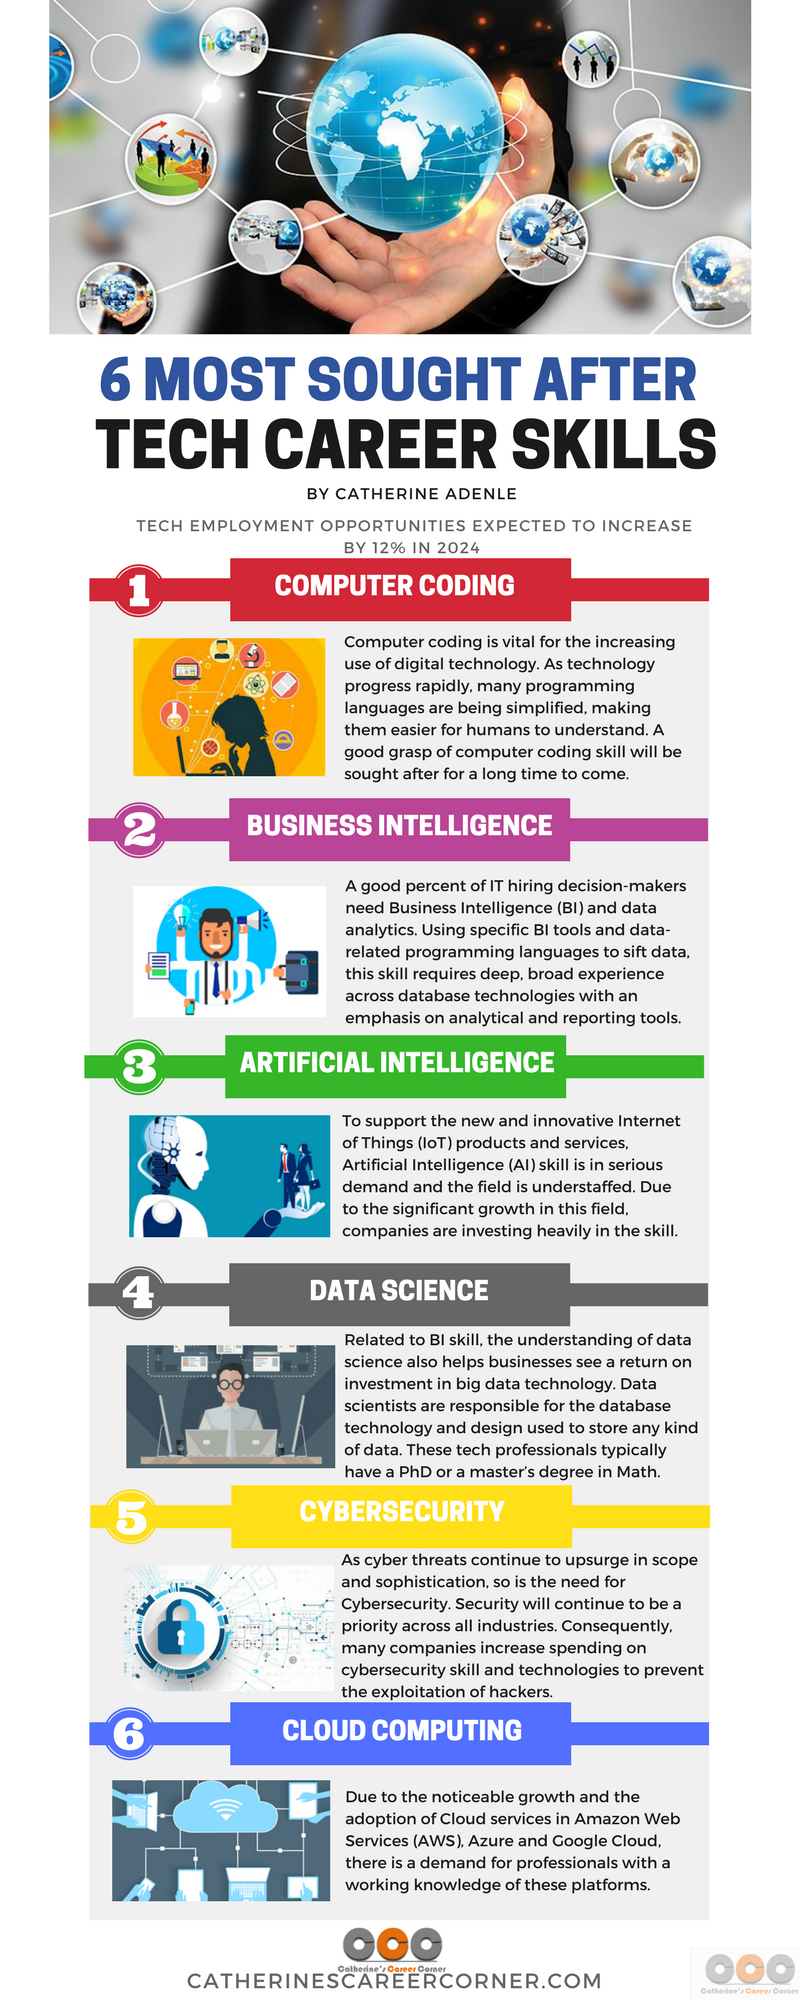 6 Most Sought-After Tech Career Skills by Employers (Infographic)